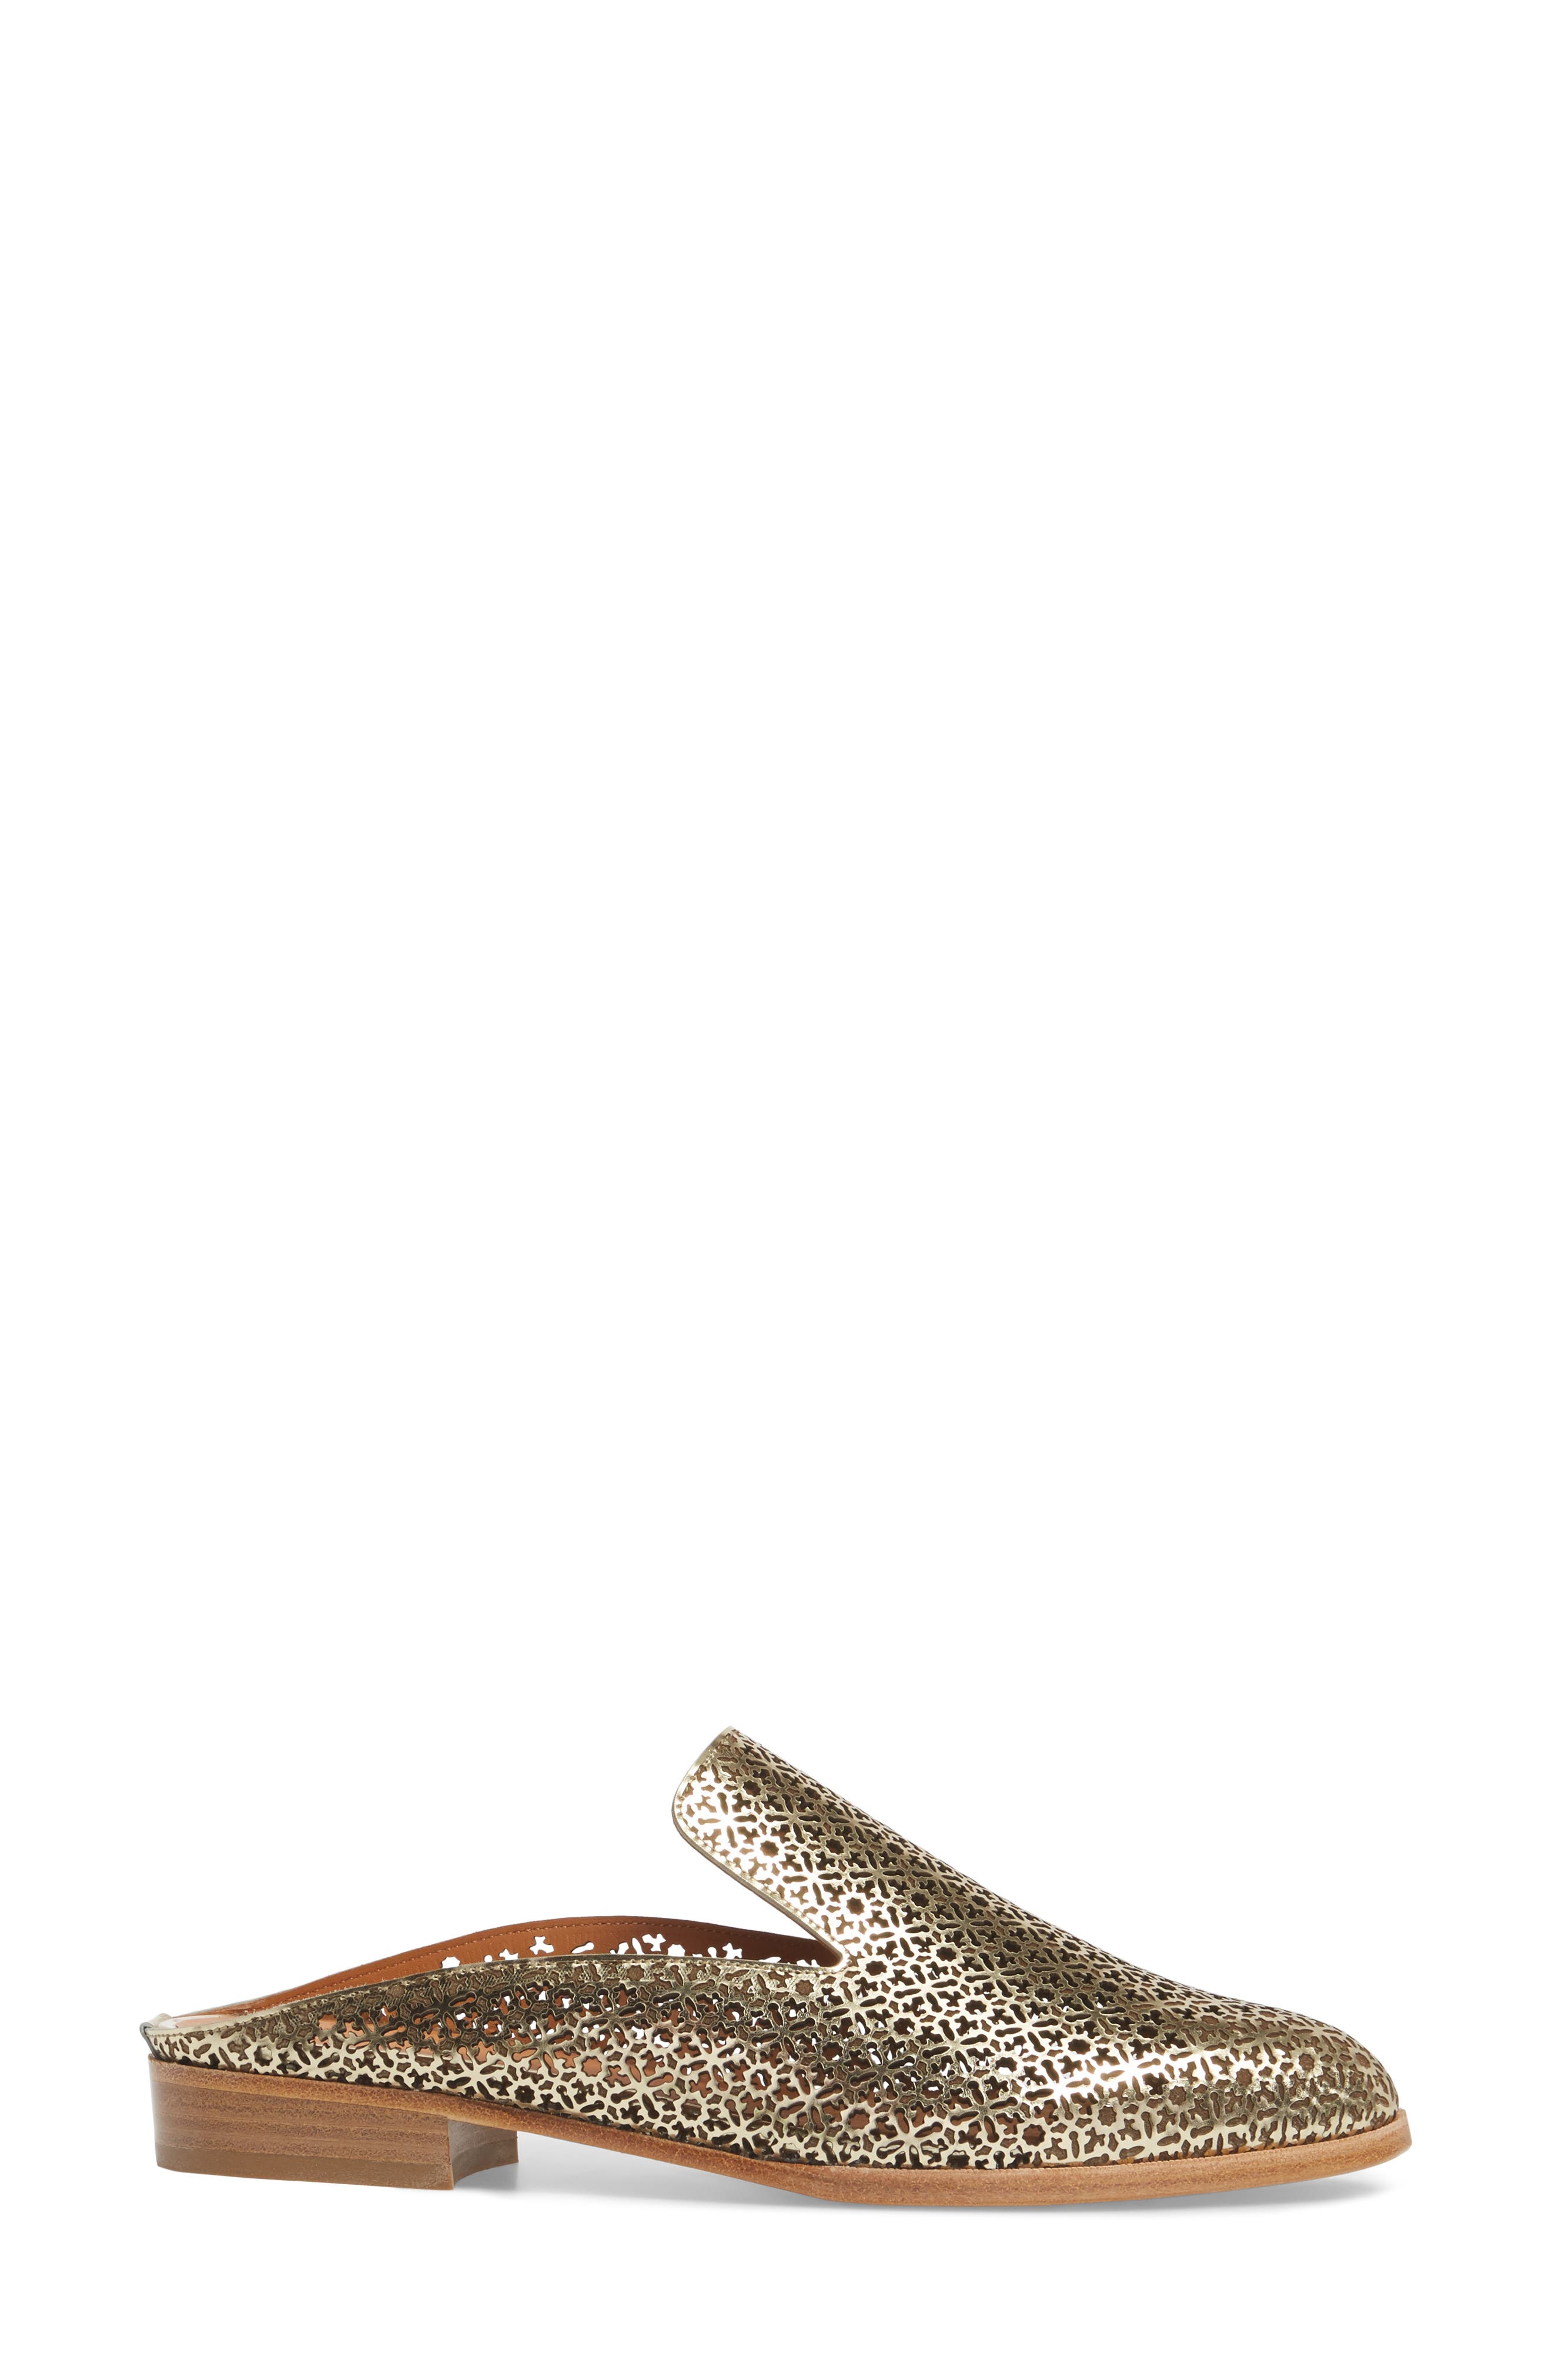 Asier Perforated Loafer Mule,                             Alternate thumbnail 3, color,                             Platino